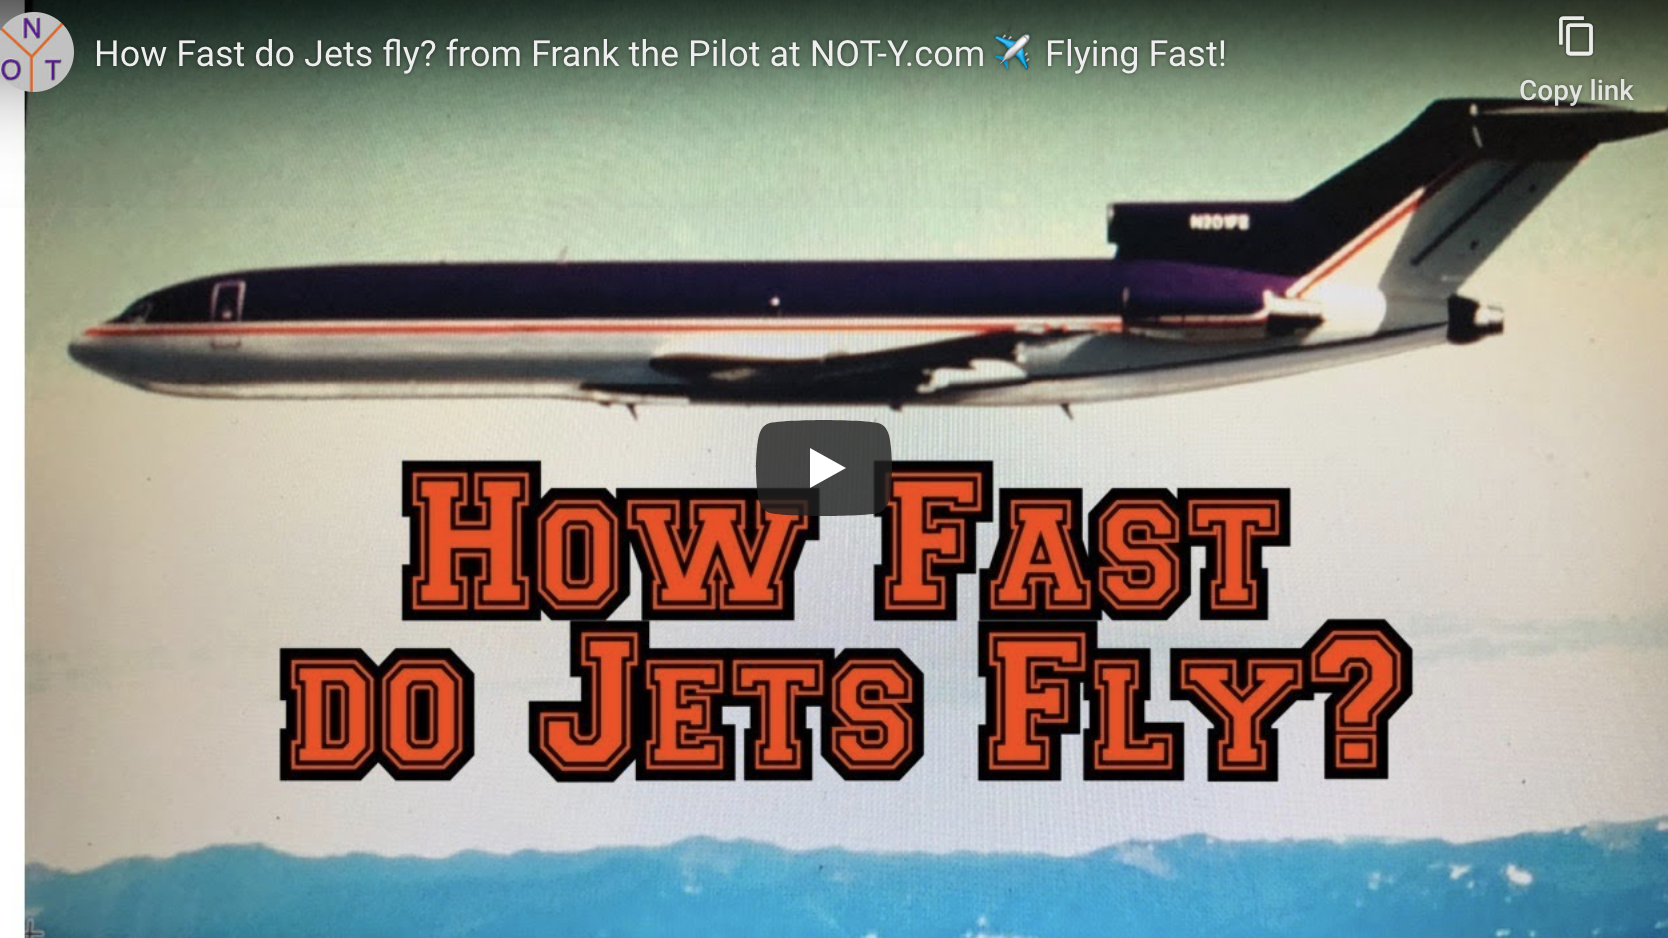 HOW FAST DO JETS FLY?